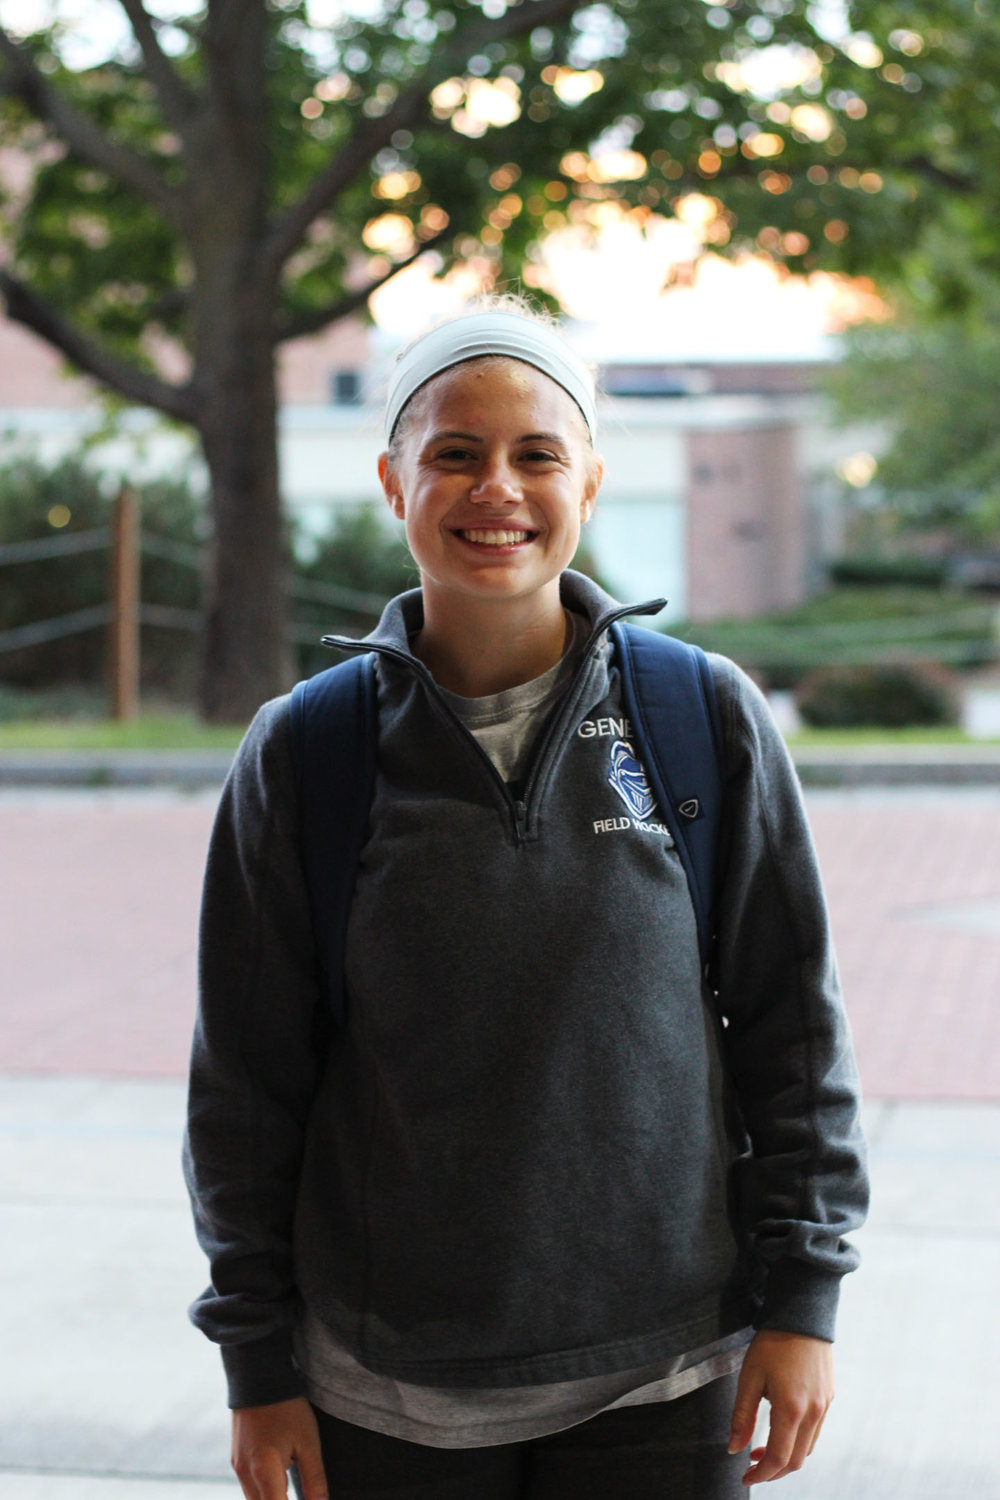 Junior midfielder Madison Albrecht makes sure to stay active as much as possible, as she is not only a member of the Geneseo varsity field hockey program, but the Geneseo women's club ice hockey program as well. When she is not on the turf or ice, Albrecht can be found studying for her biology major and psychology minor in Bailey. (Ellayna Fredericks/Associate Photo Editor)